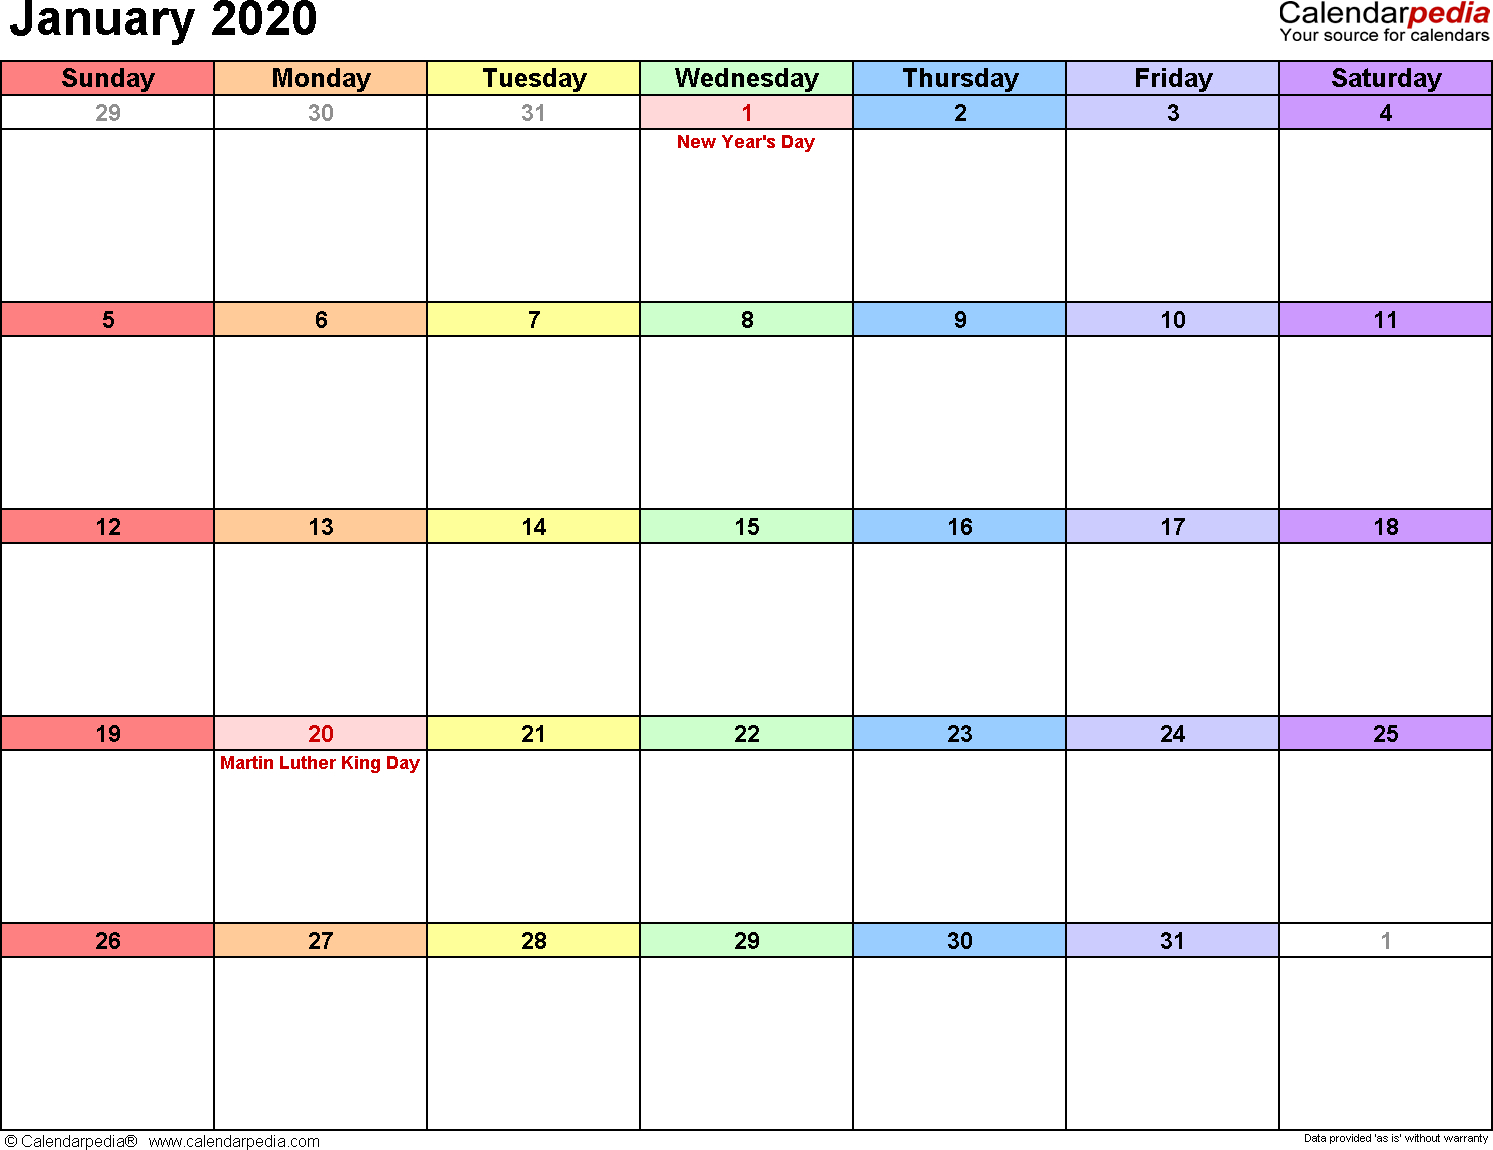 January 2020  Calendar Templates For Word, Excel And Pdf inside January 2020 Calendar Starting Monday